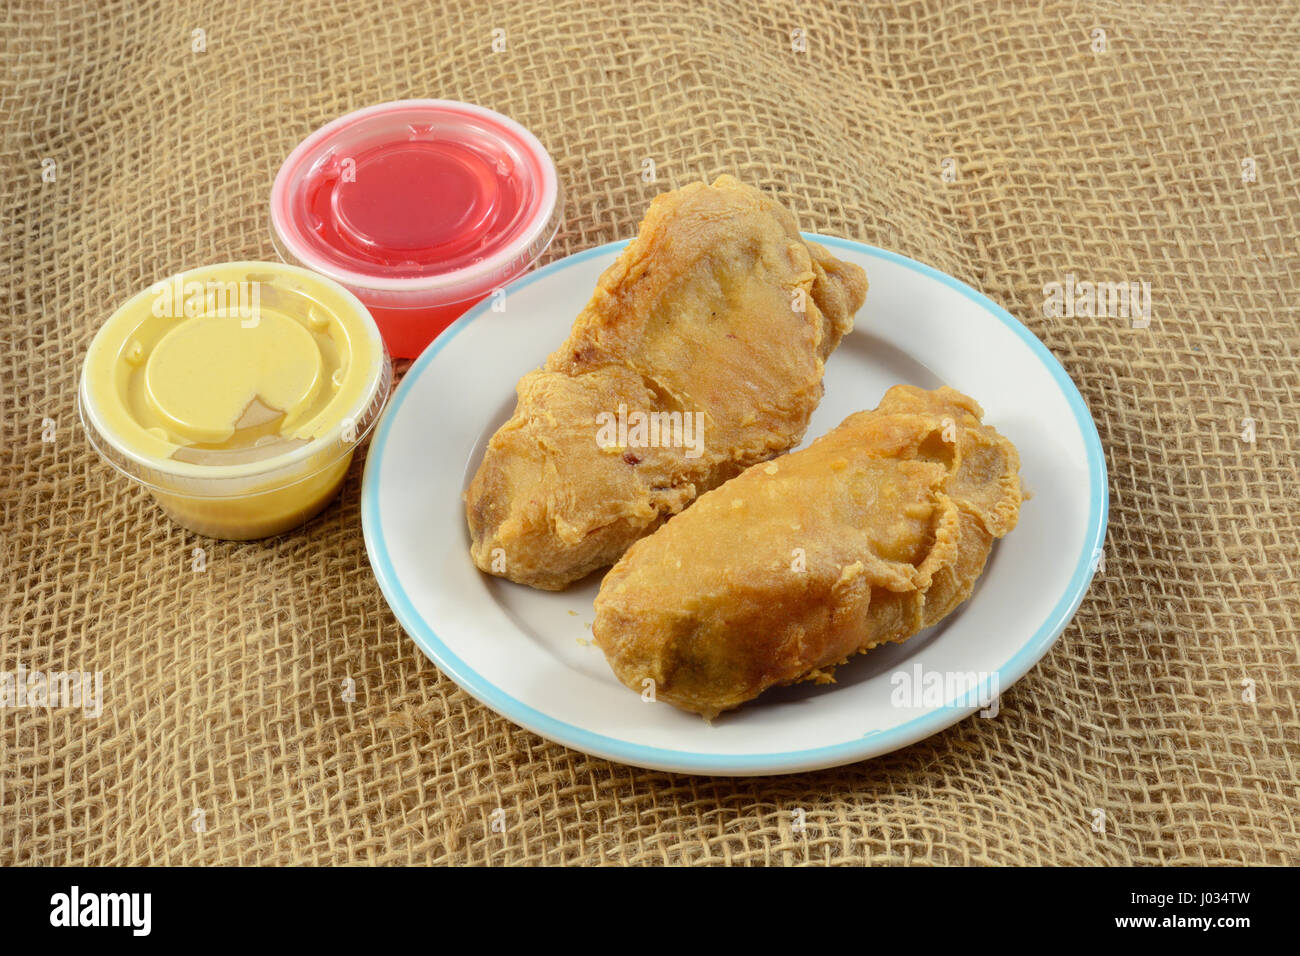 Fried chicken tenderloin appetizer with mustard and sweet and sour sauce - Stock Image